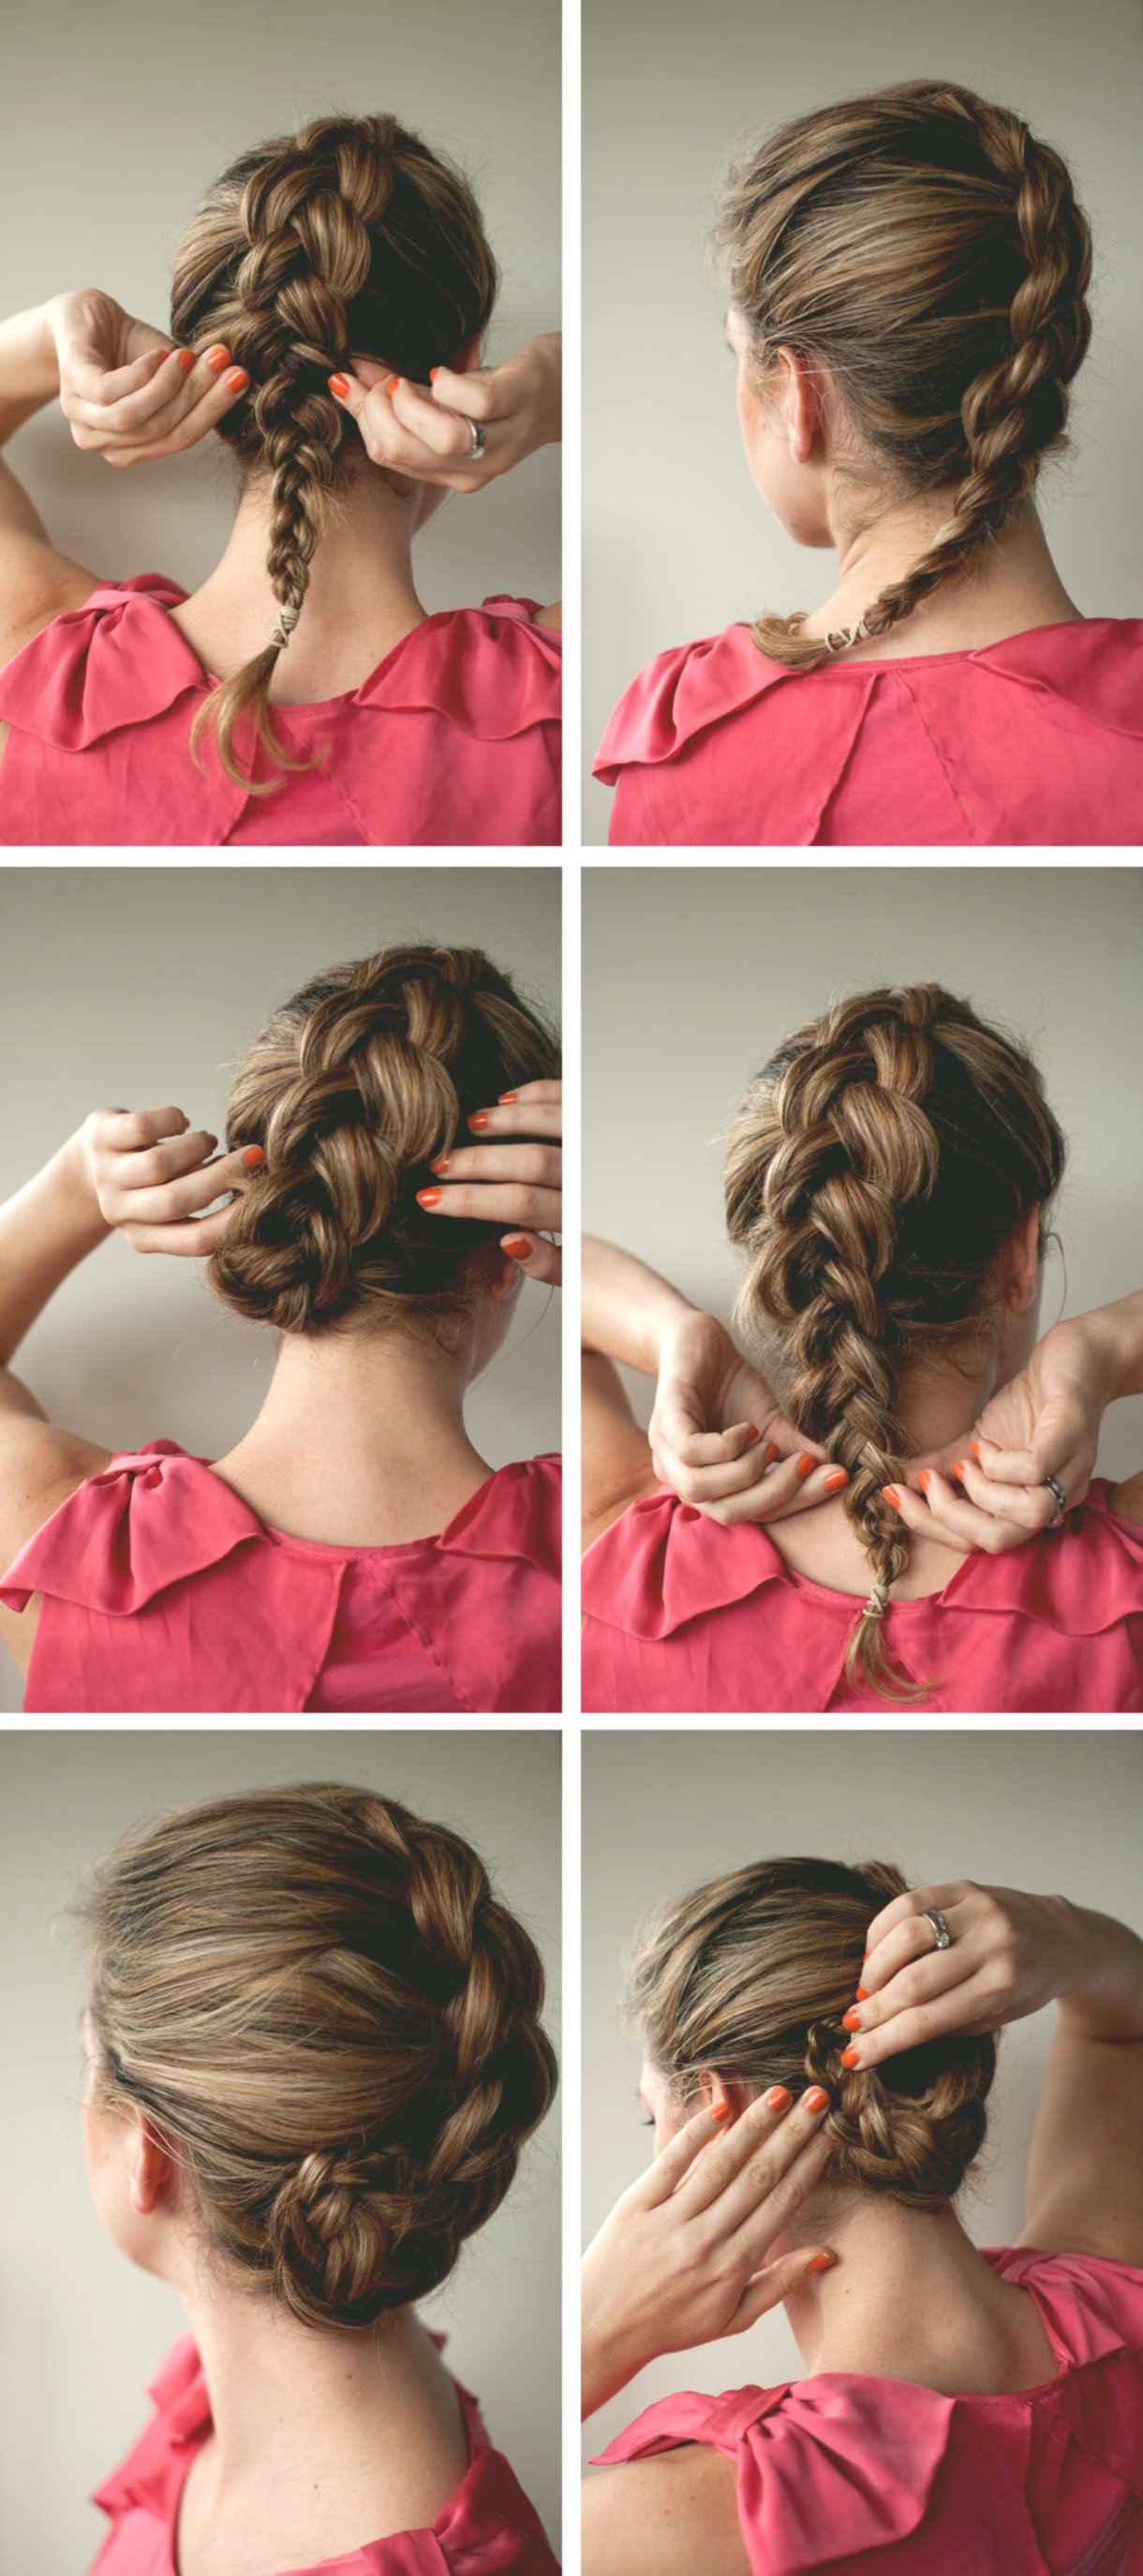 lovely braided hairstyles simple design-Breathtaking braided hairstyles Simple photo